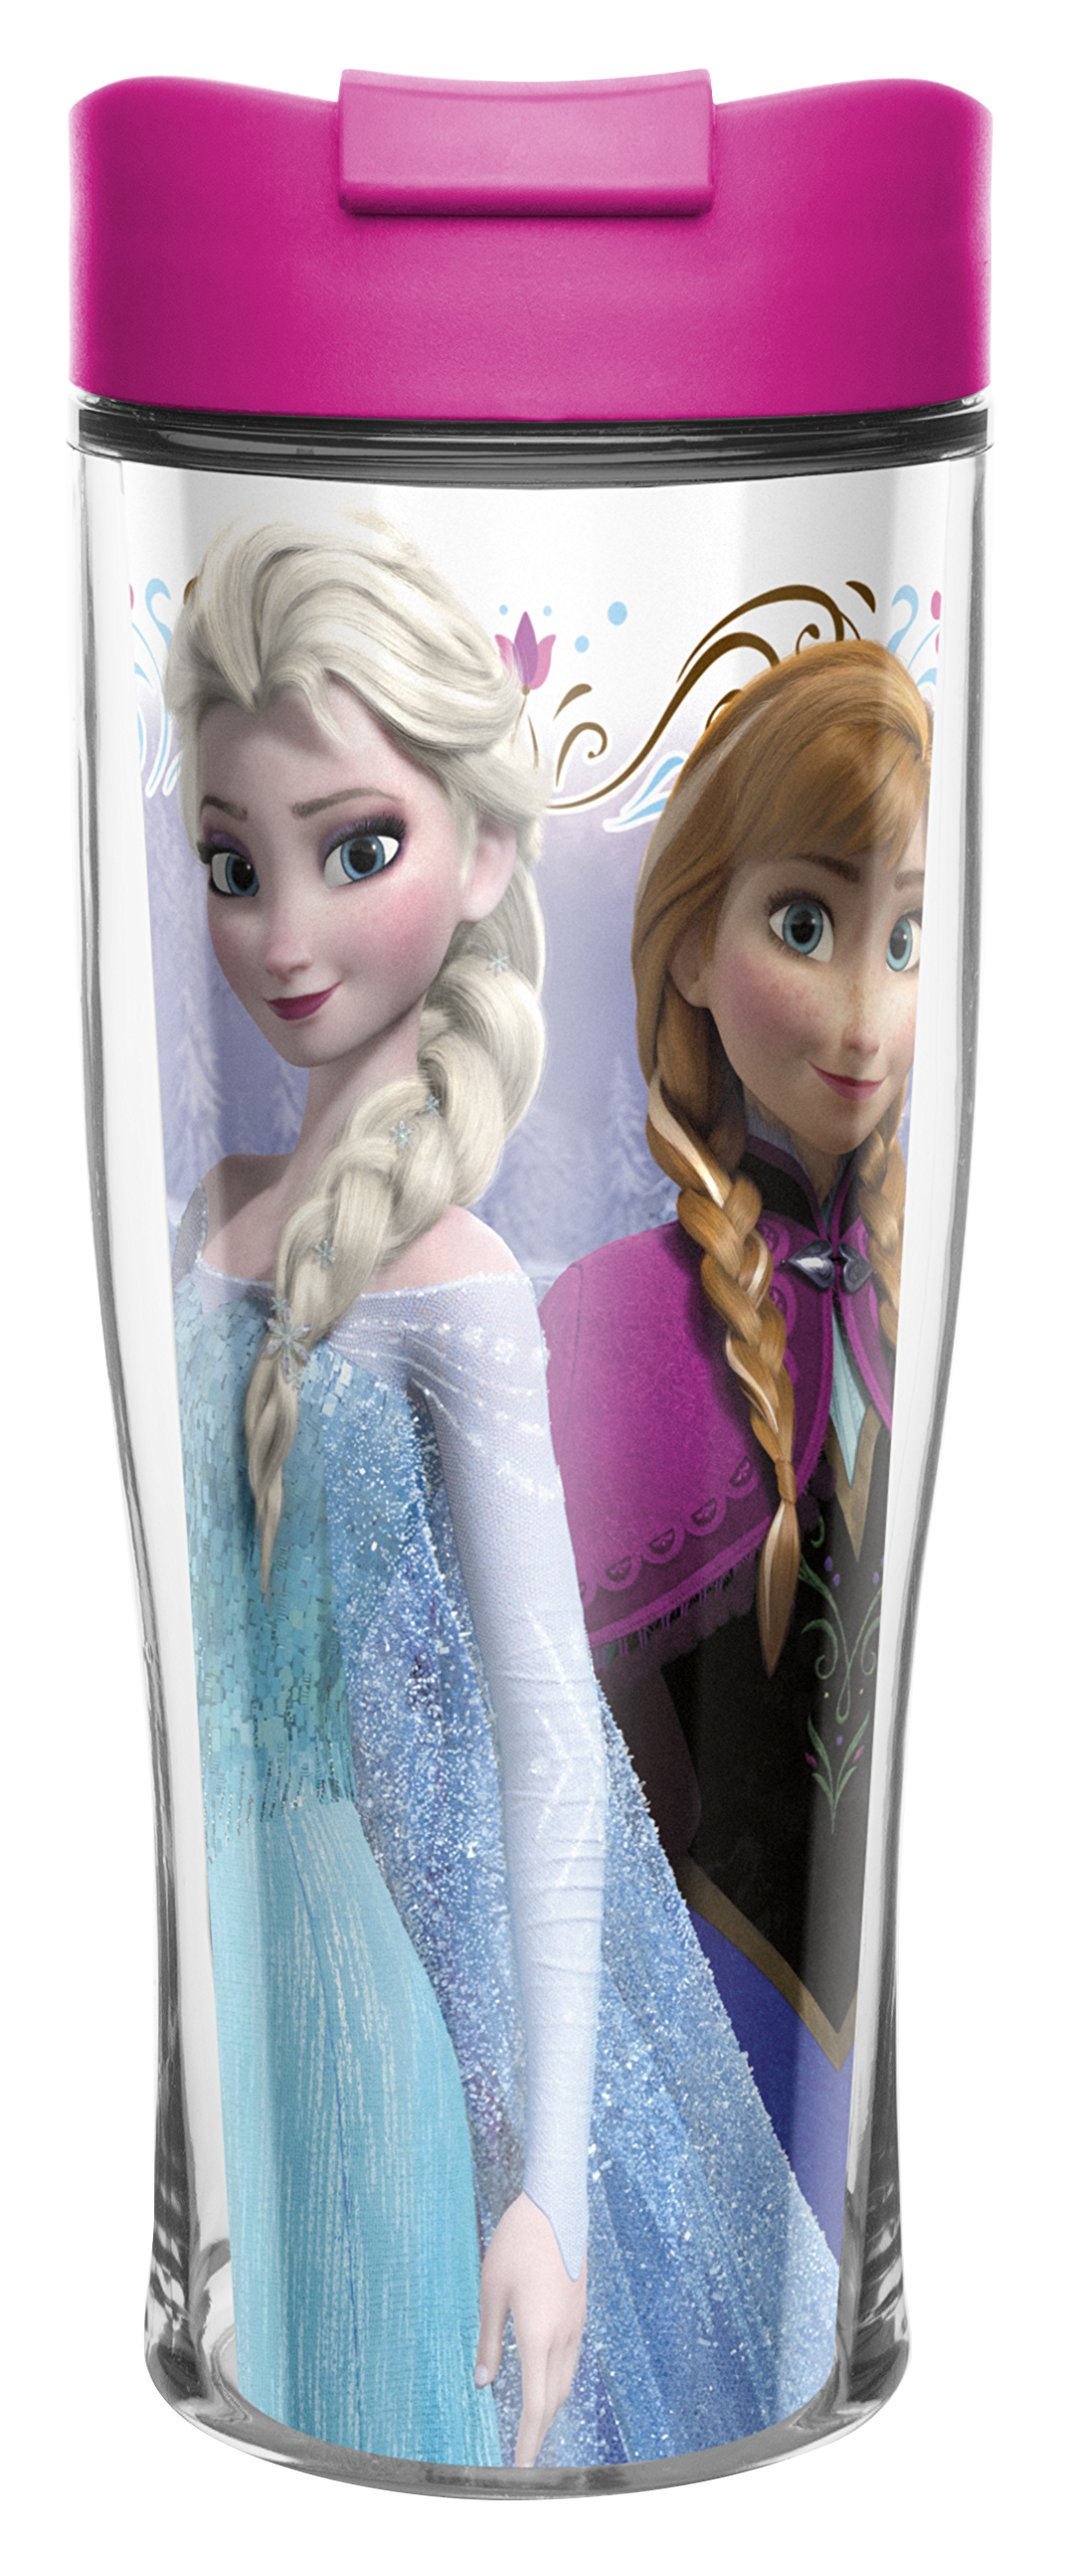 Zak! Designs Insulated Travel Mug with Anna and Elsa from Frozen, 15-Ounce